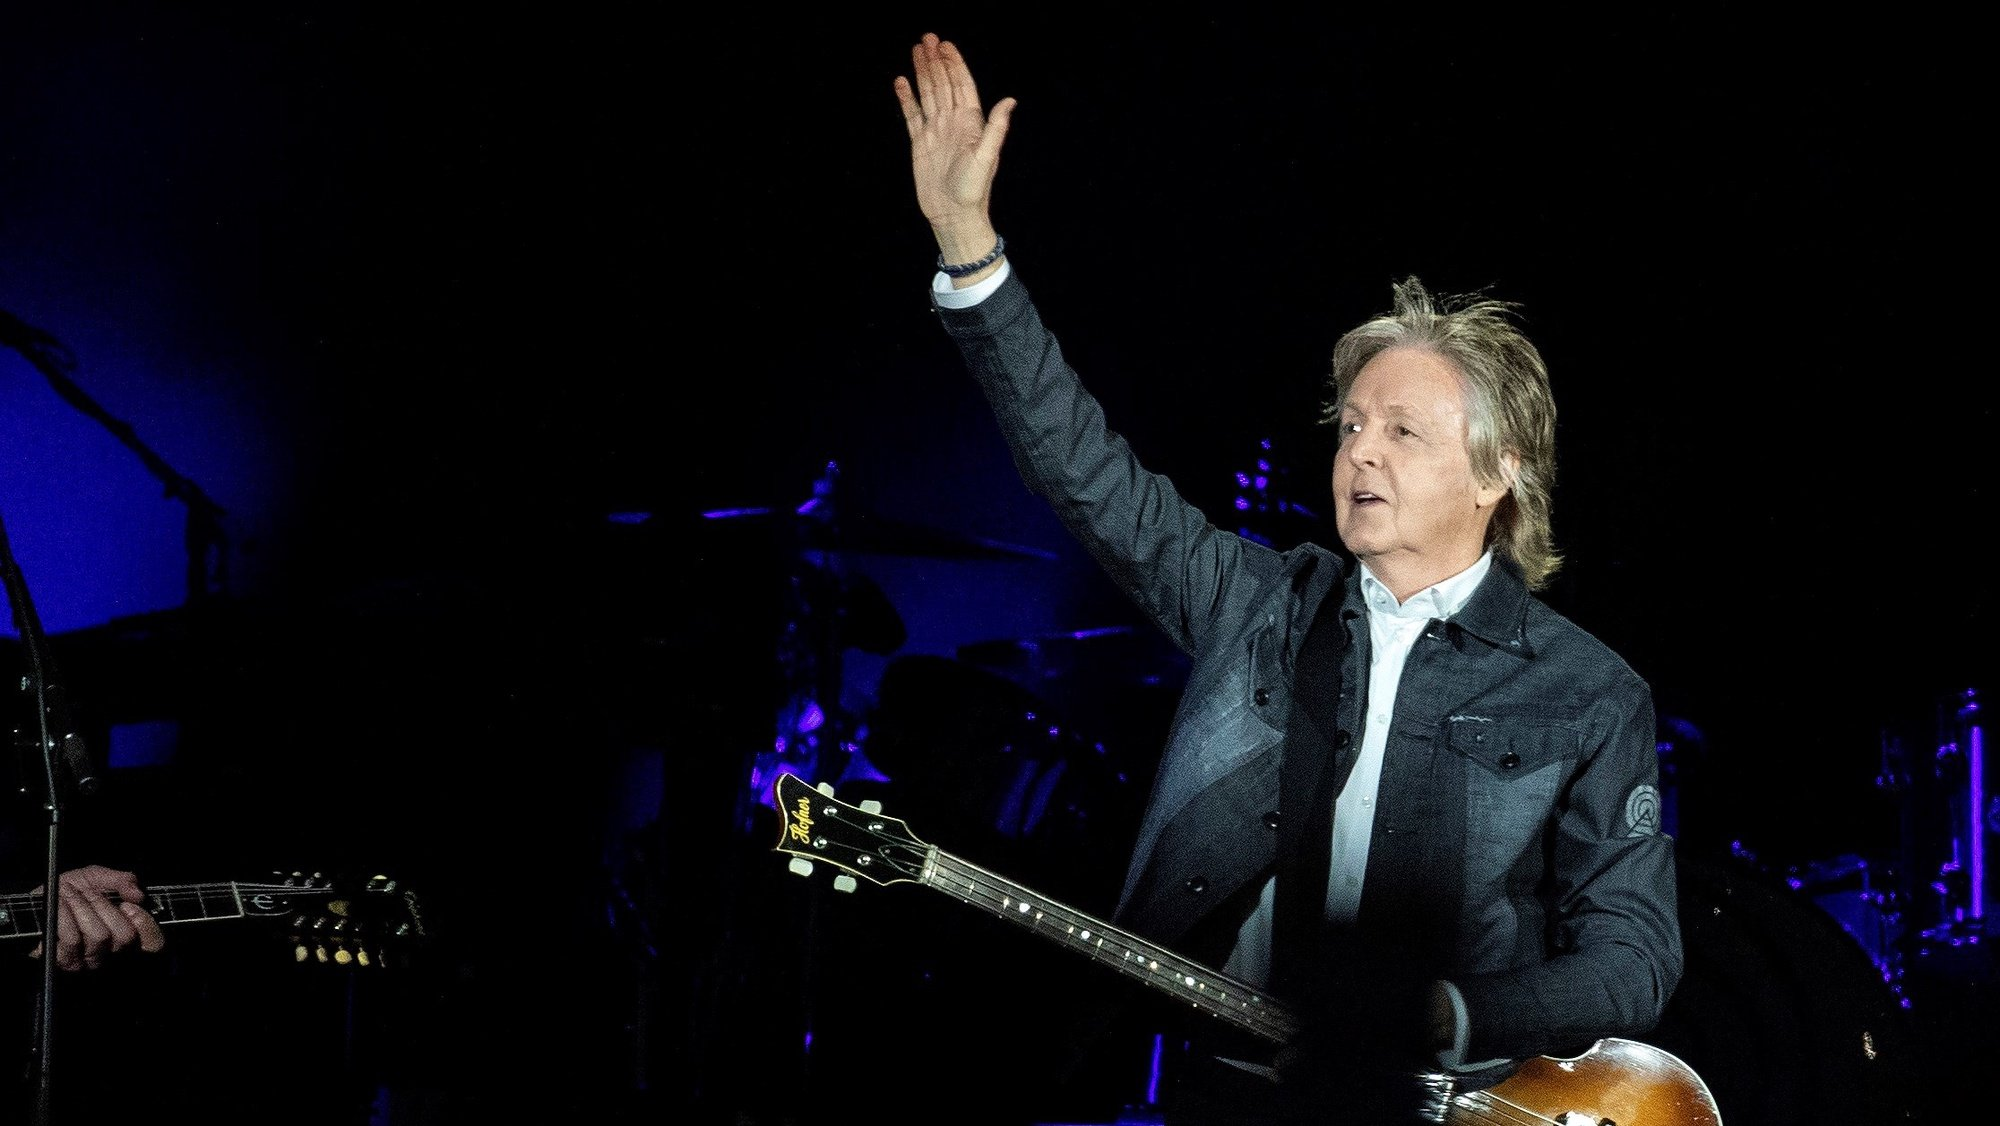 epa07466094 British singer Paul McCartney performs during the concert of the tour 'The Freshen Up' at the Allianz Parque in Sao Paulo, Brazil, 26 March 2019.  EPA/SEBASTIAO MOREIRA PHOTO TO BE USED SOLELY TO ILLUSTRATE NEWS REPORTING ON THE EVENT DEPICTED IN THIS IMAGE  NO SALES/NO ARCHIVES